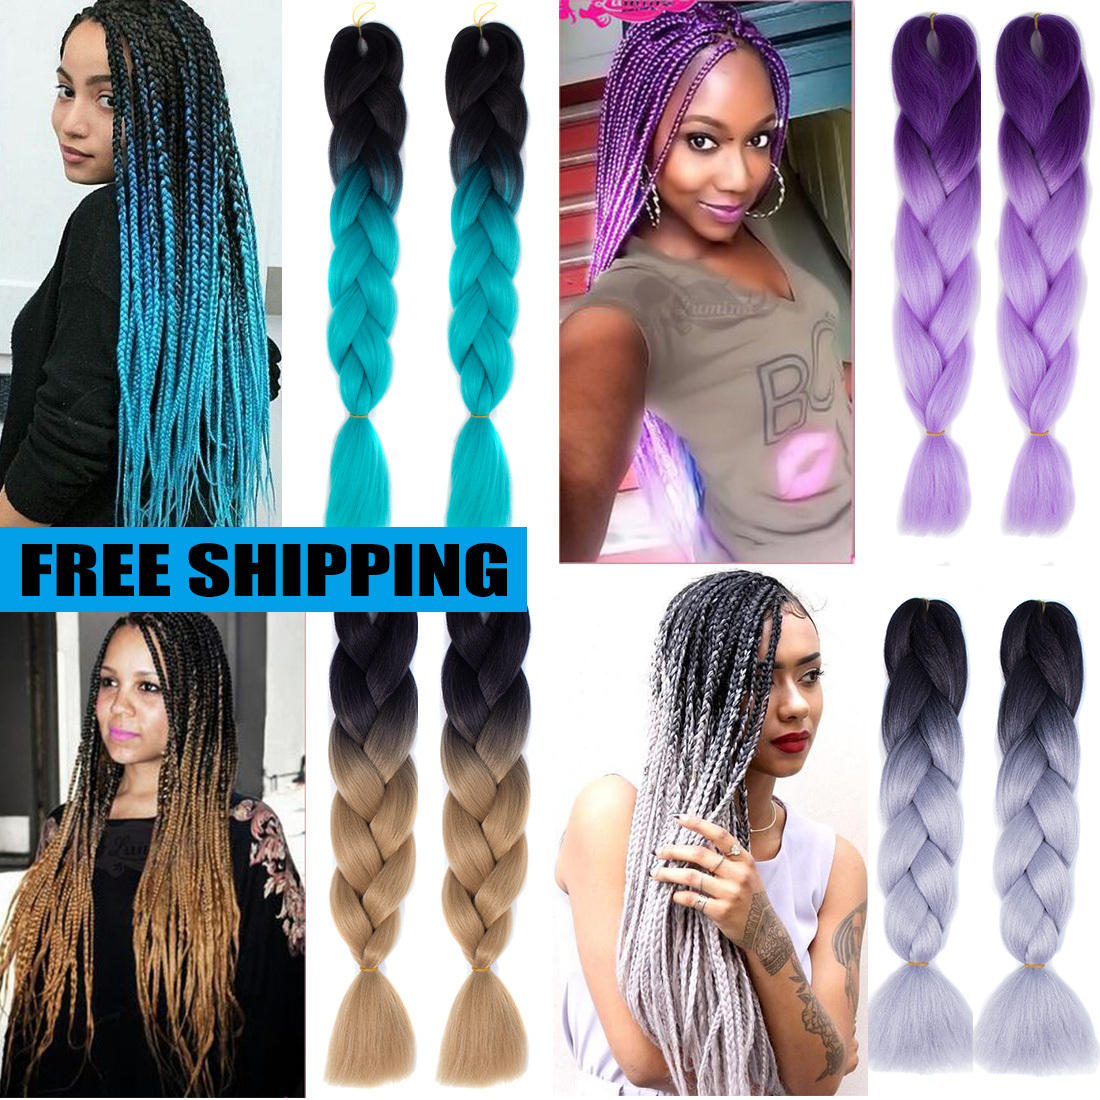 Xpression Hair Extension Xp2460 2 Customer Reviews And 1 Listing